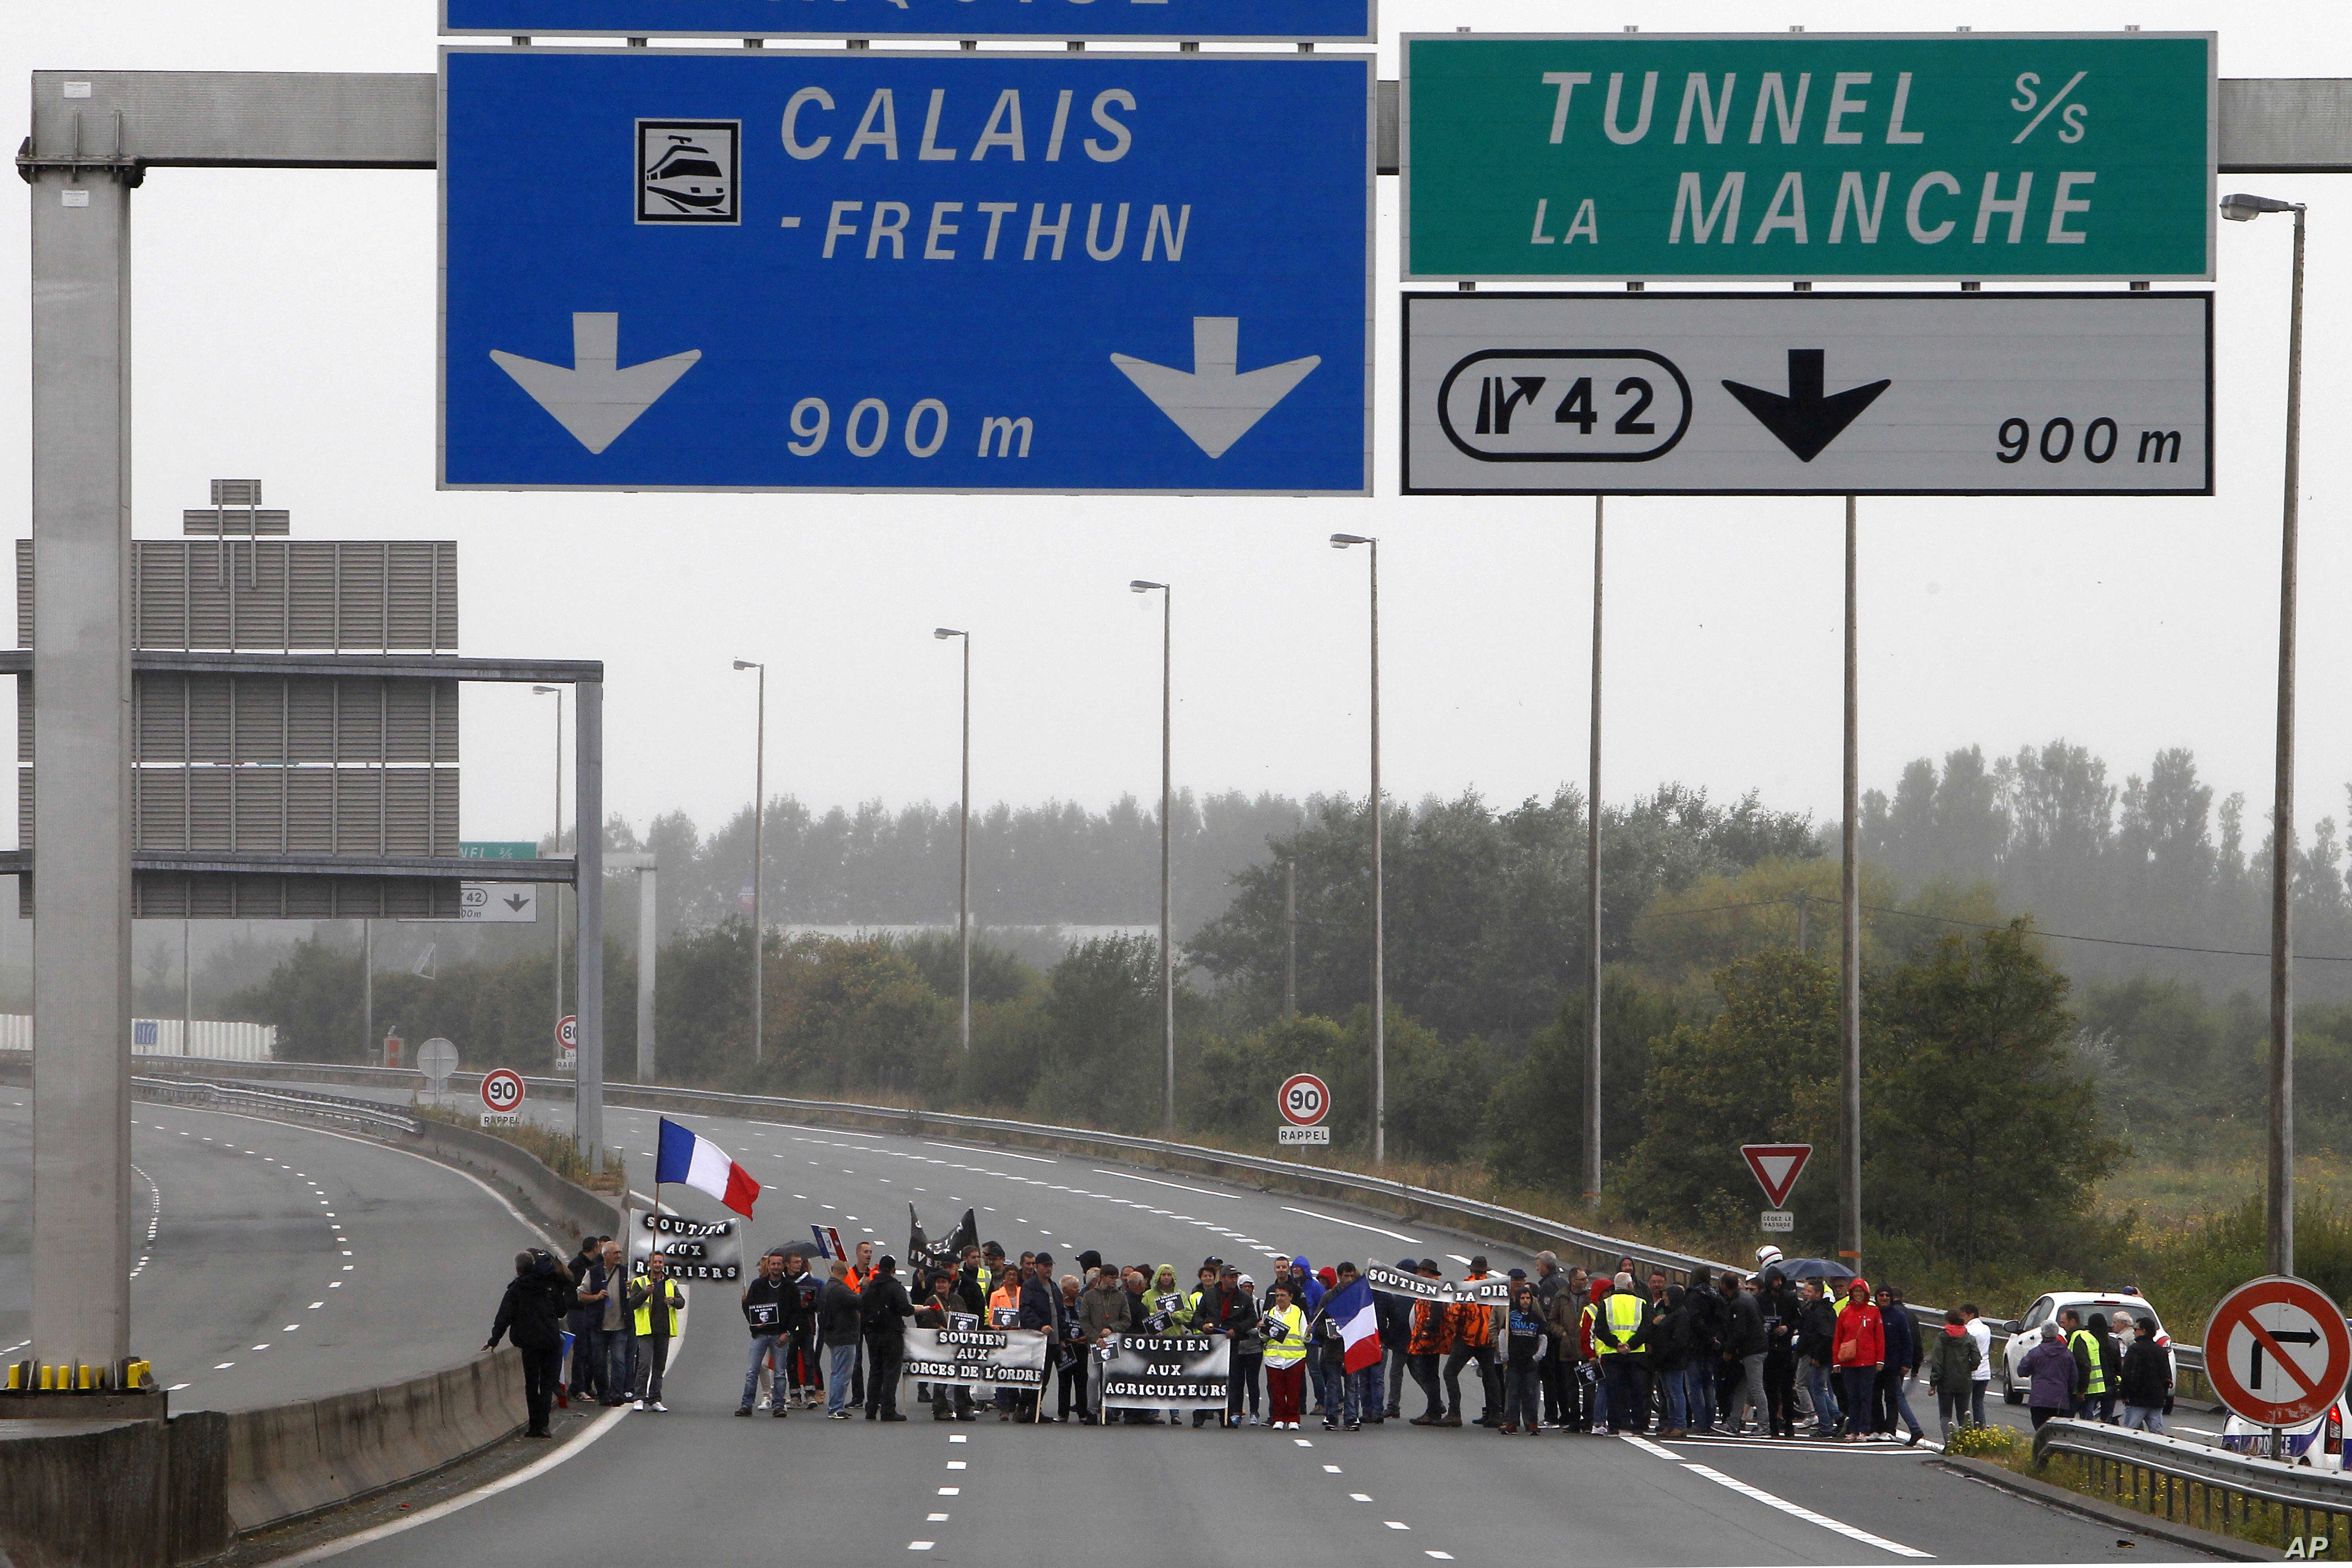 People block the highway leading to Calais and the Channel tunnel in Calais, northern France, Sept. 5, 2016.